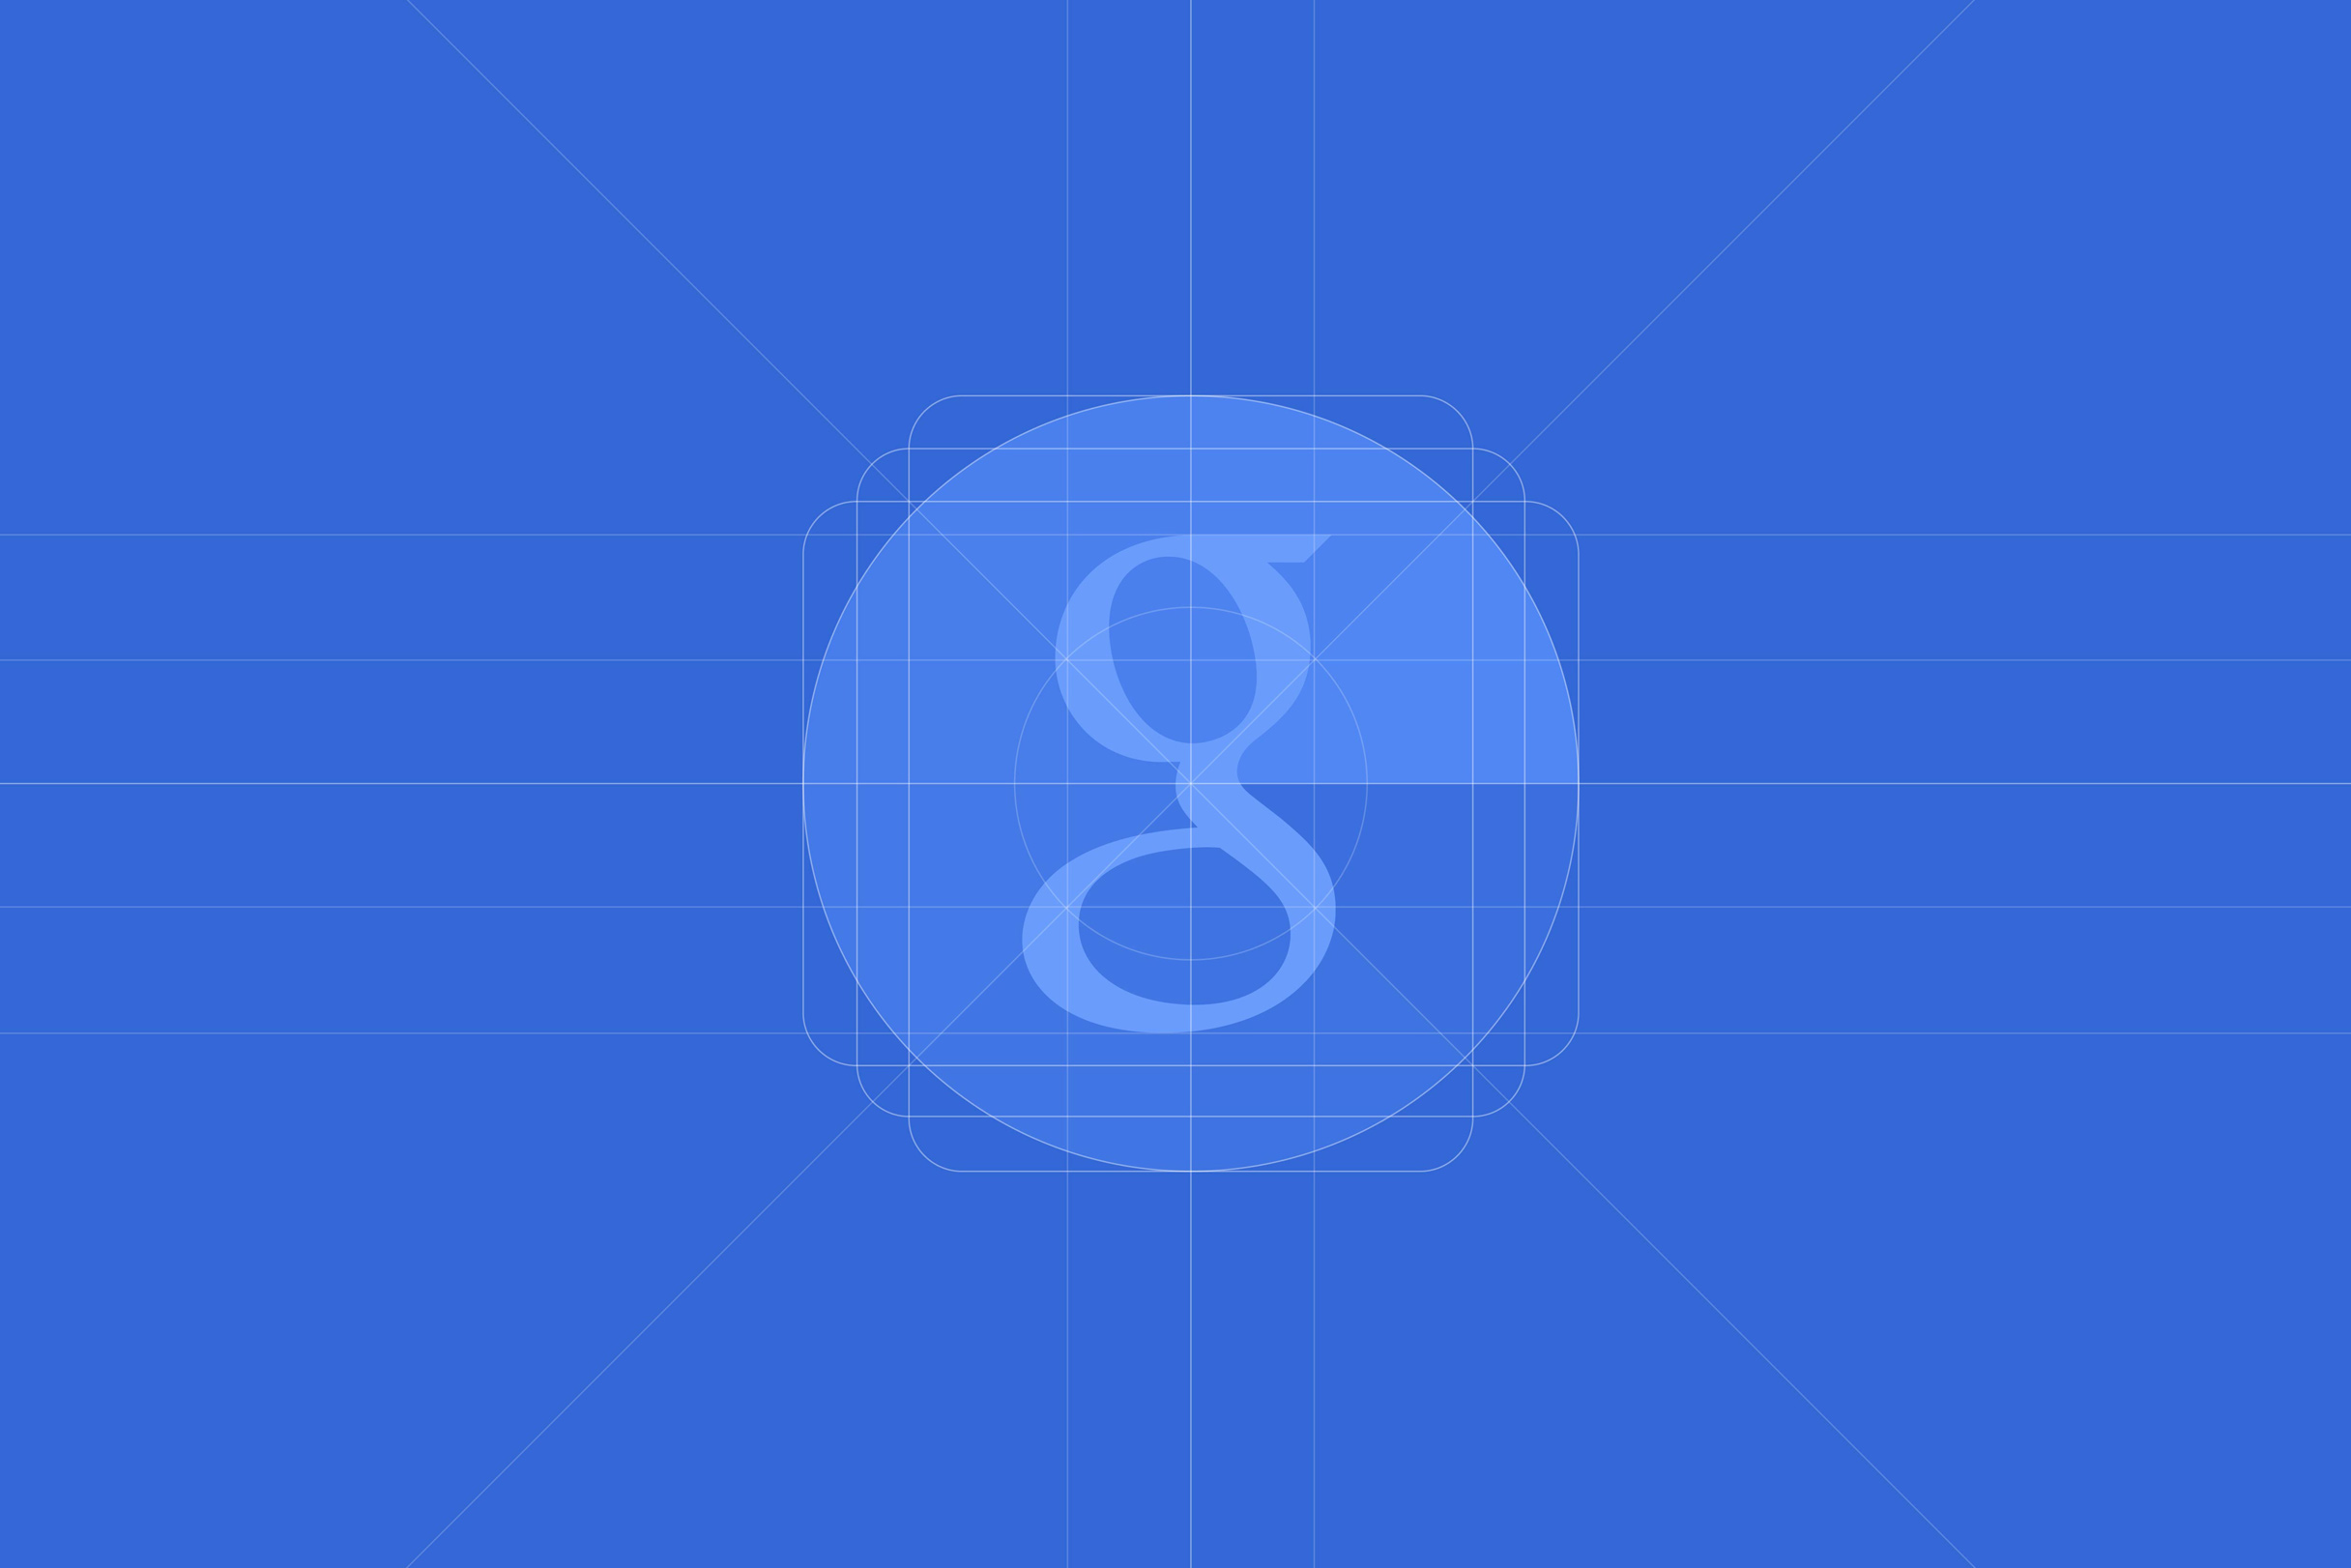 welcome_new_google_design_3x2.jpg